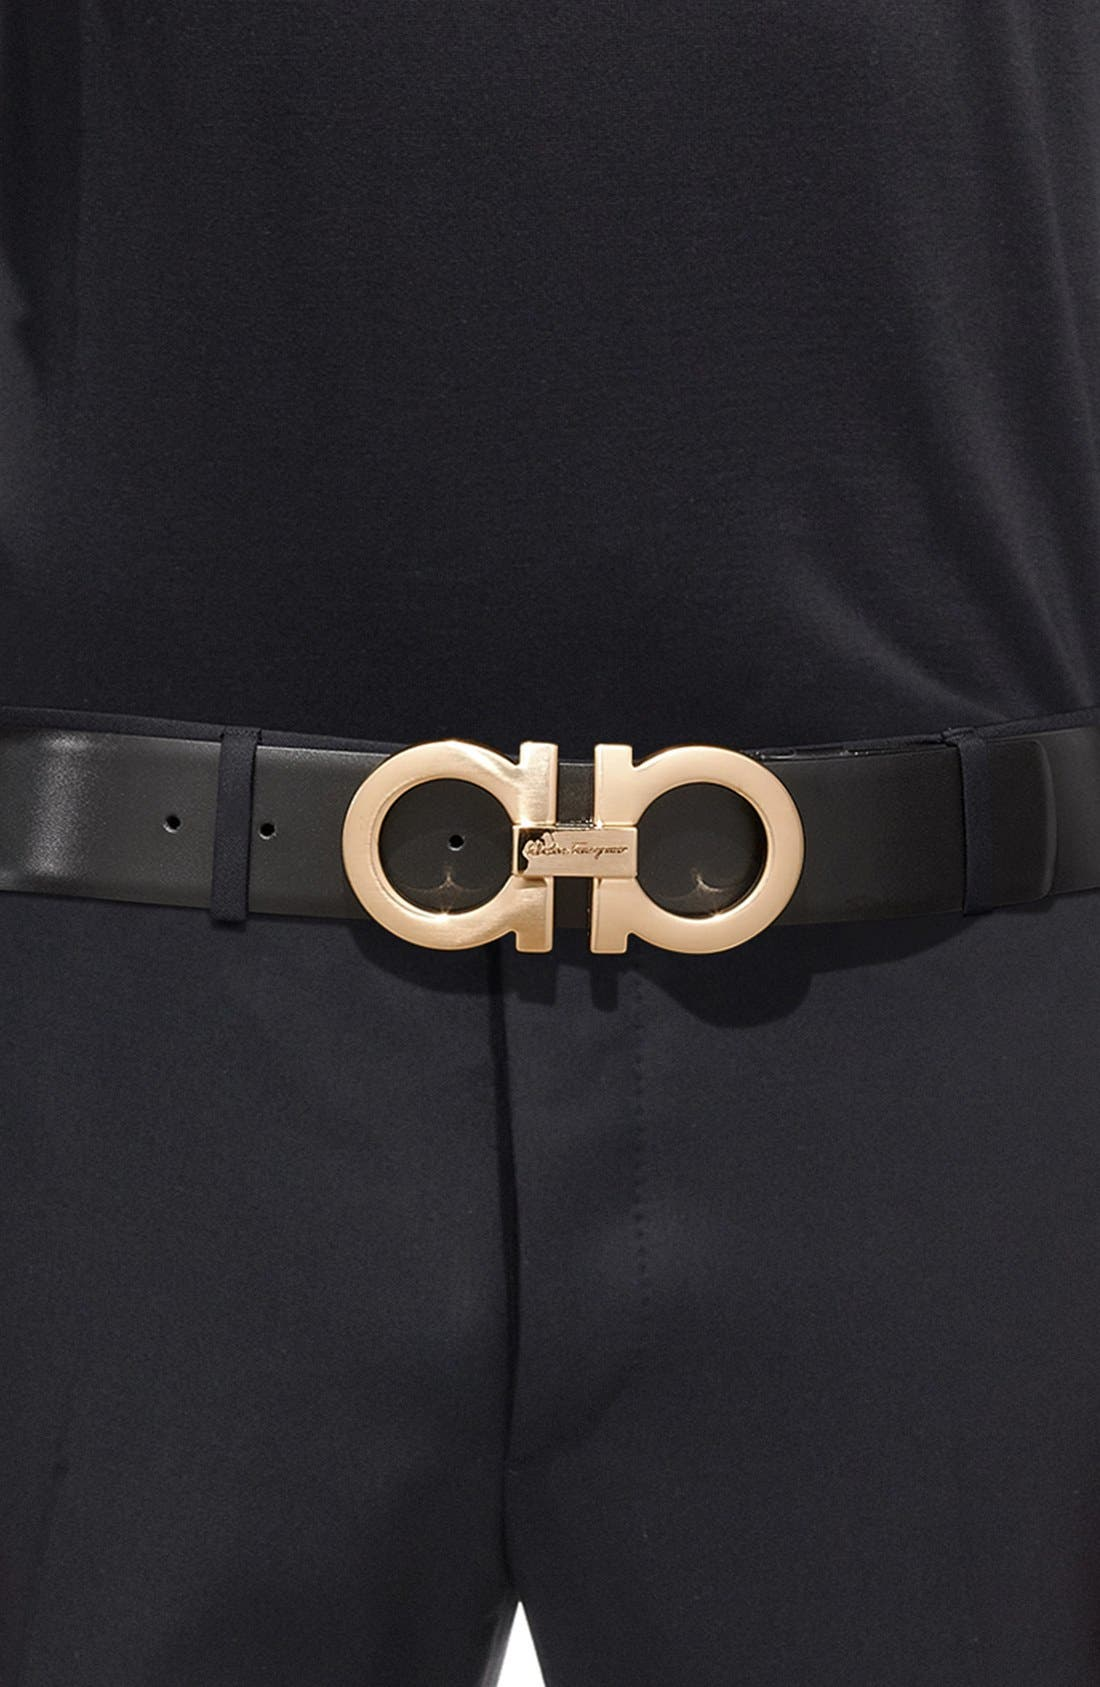 Reversible Calfskin Belt,                             Alternate thumbnail 5, color,                             001